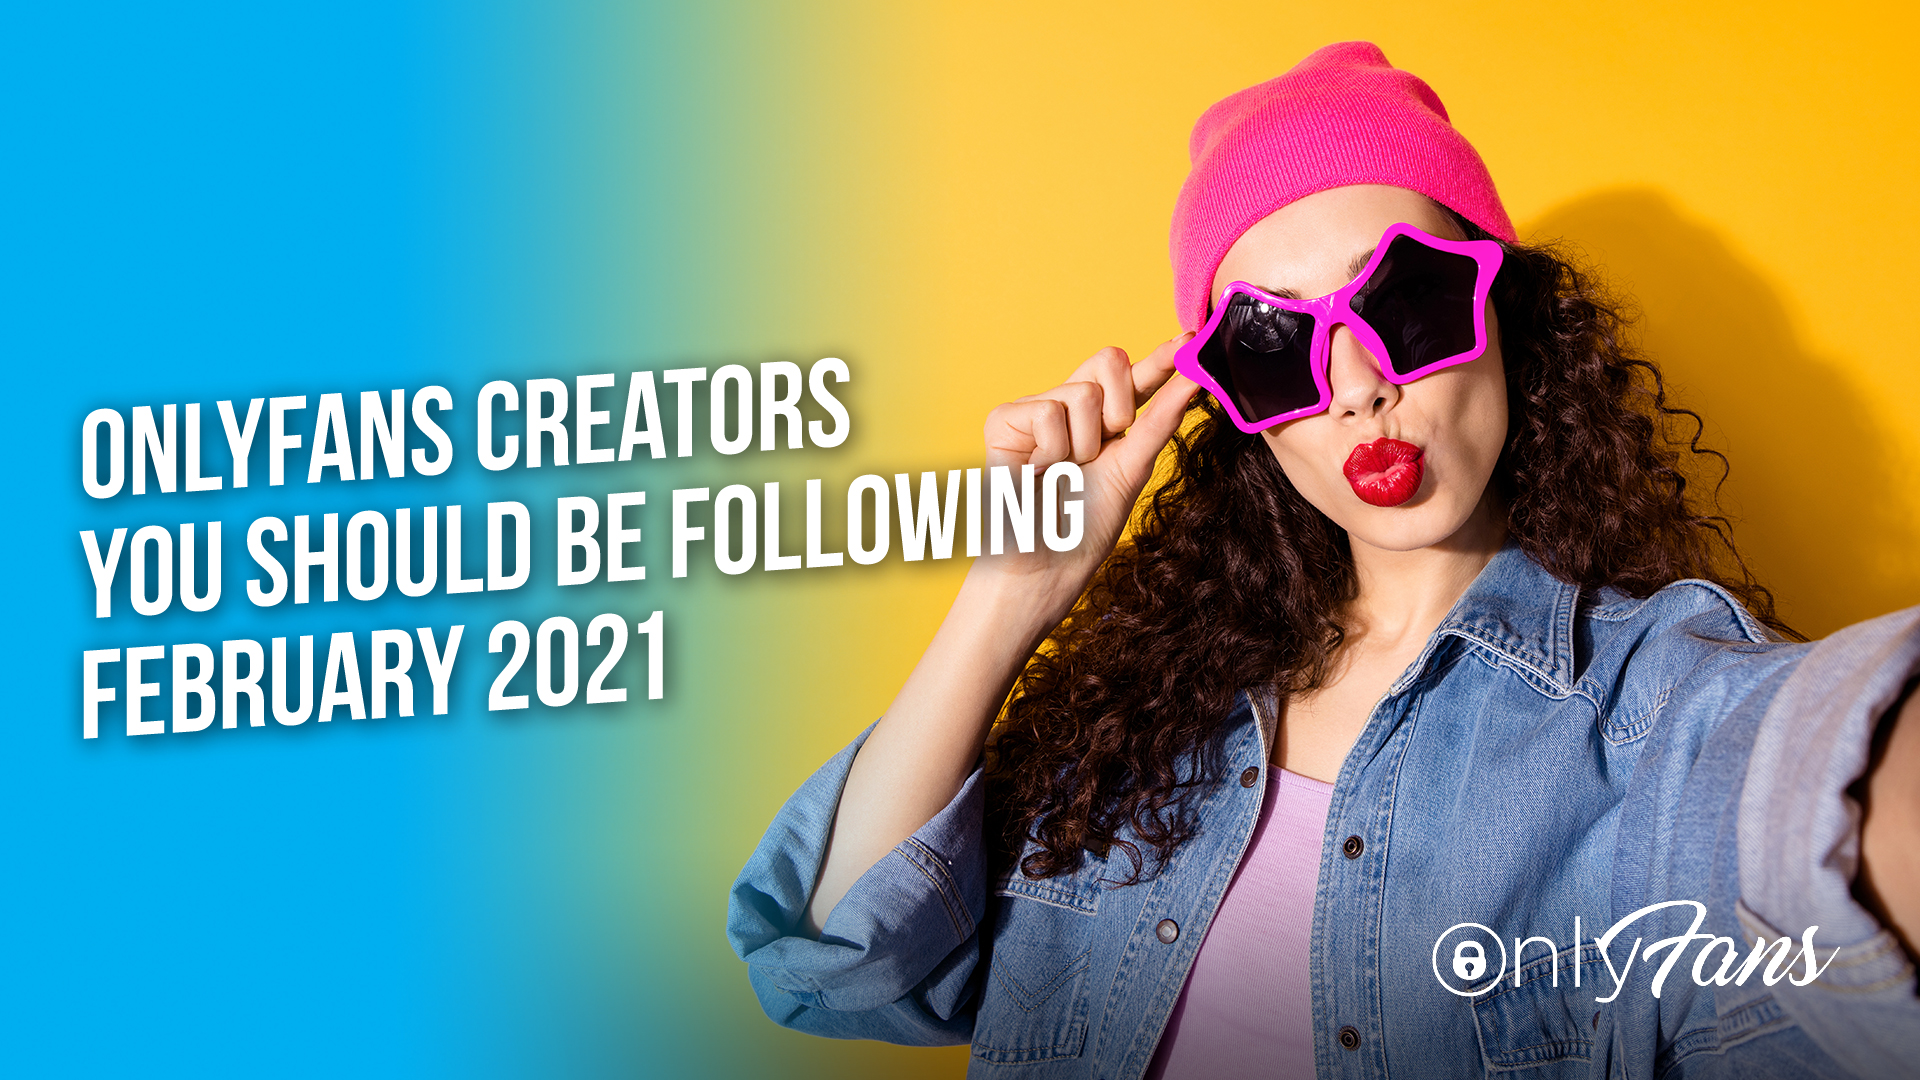 OnlyFans creators you should be following February 2021